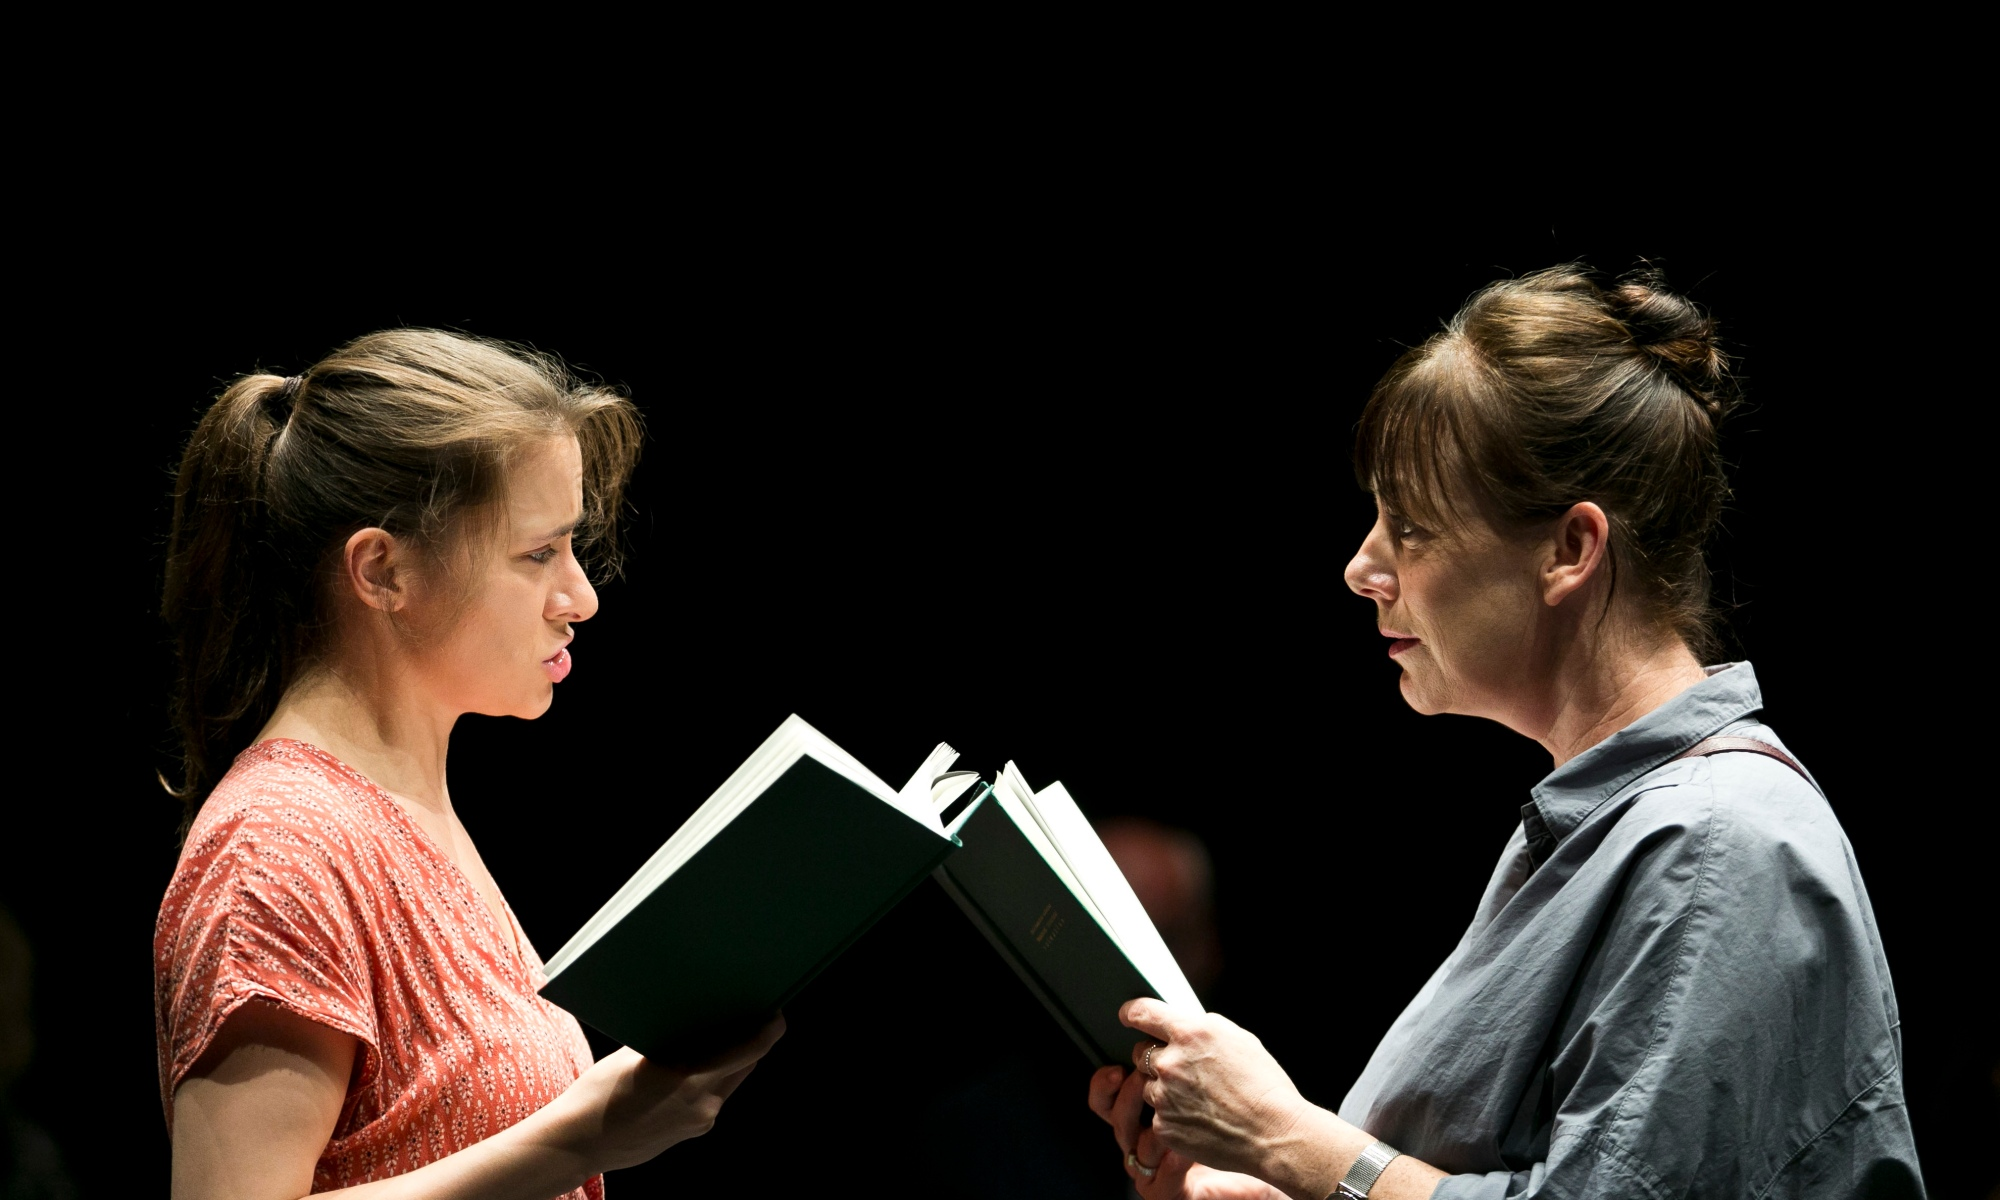 Two women look at each other, face-to-face, as they both read from green books in their hands.